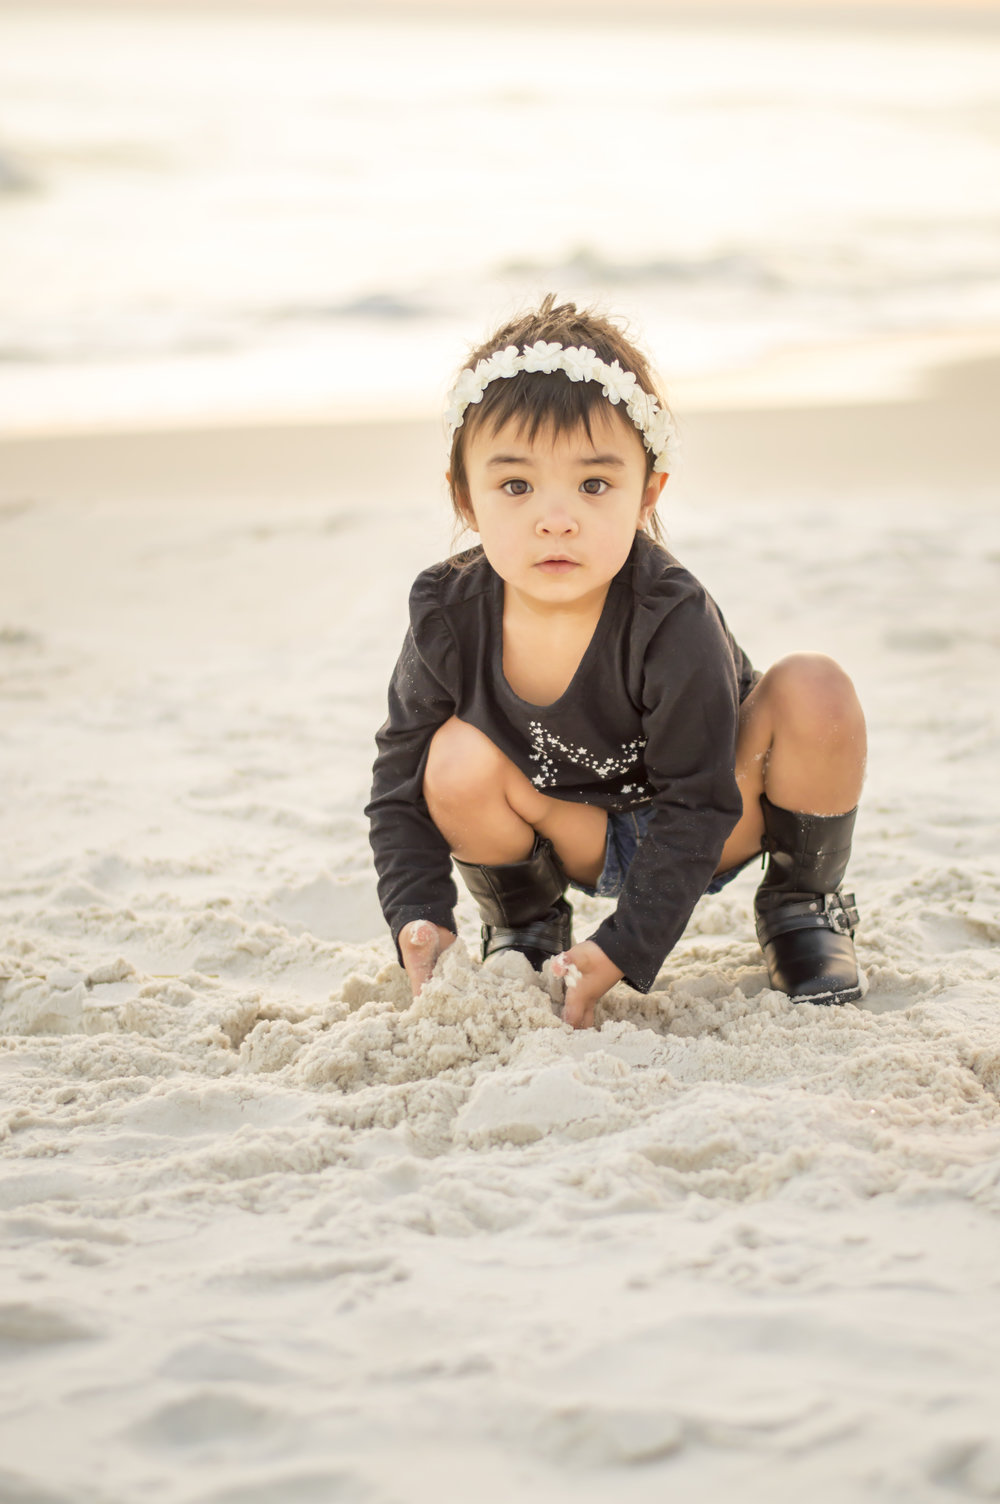 Child on Beach Photo